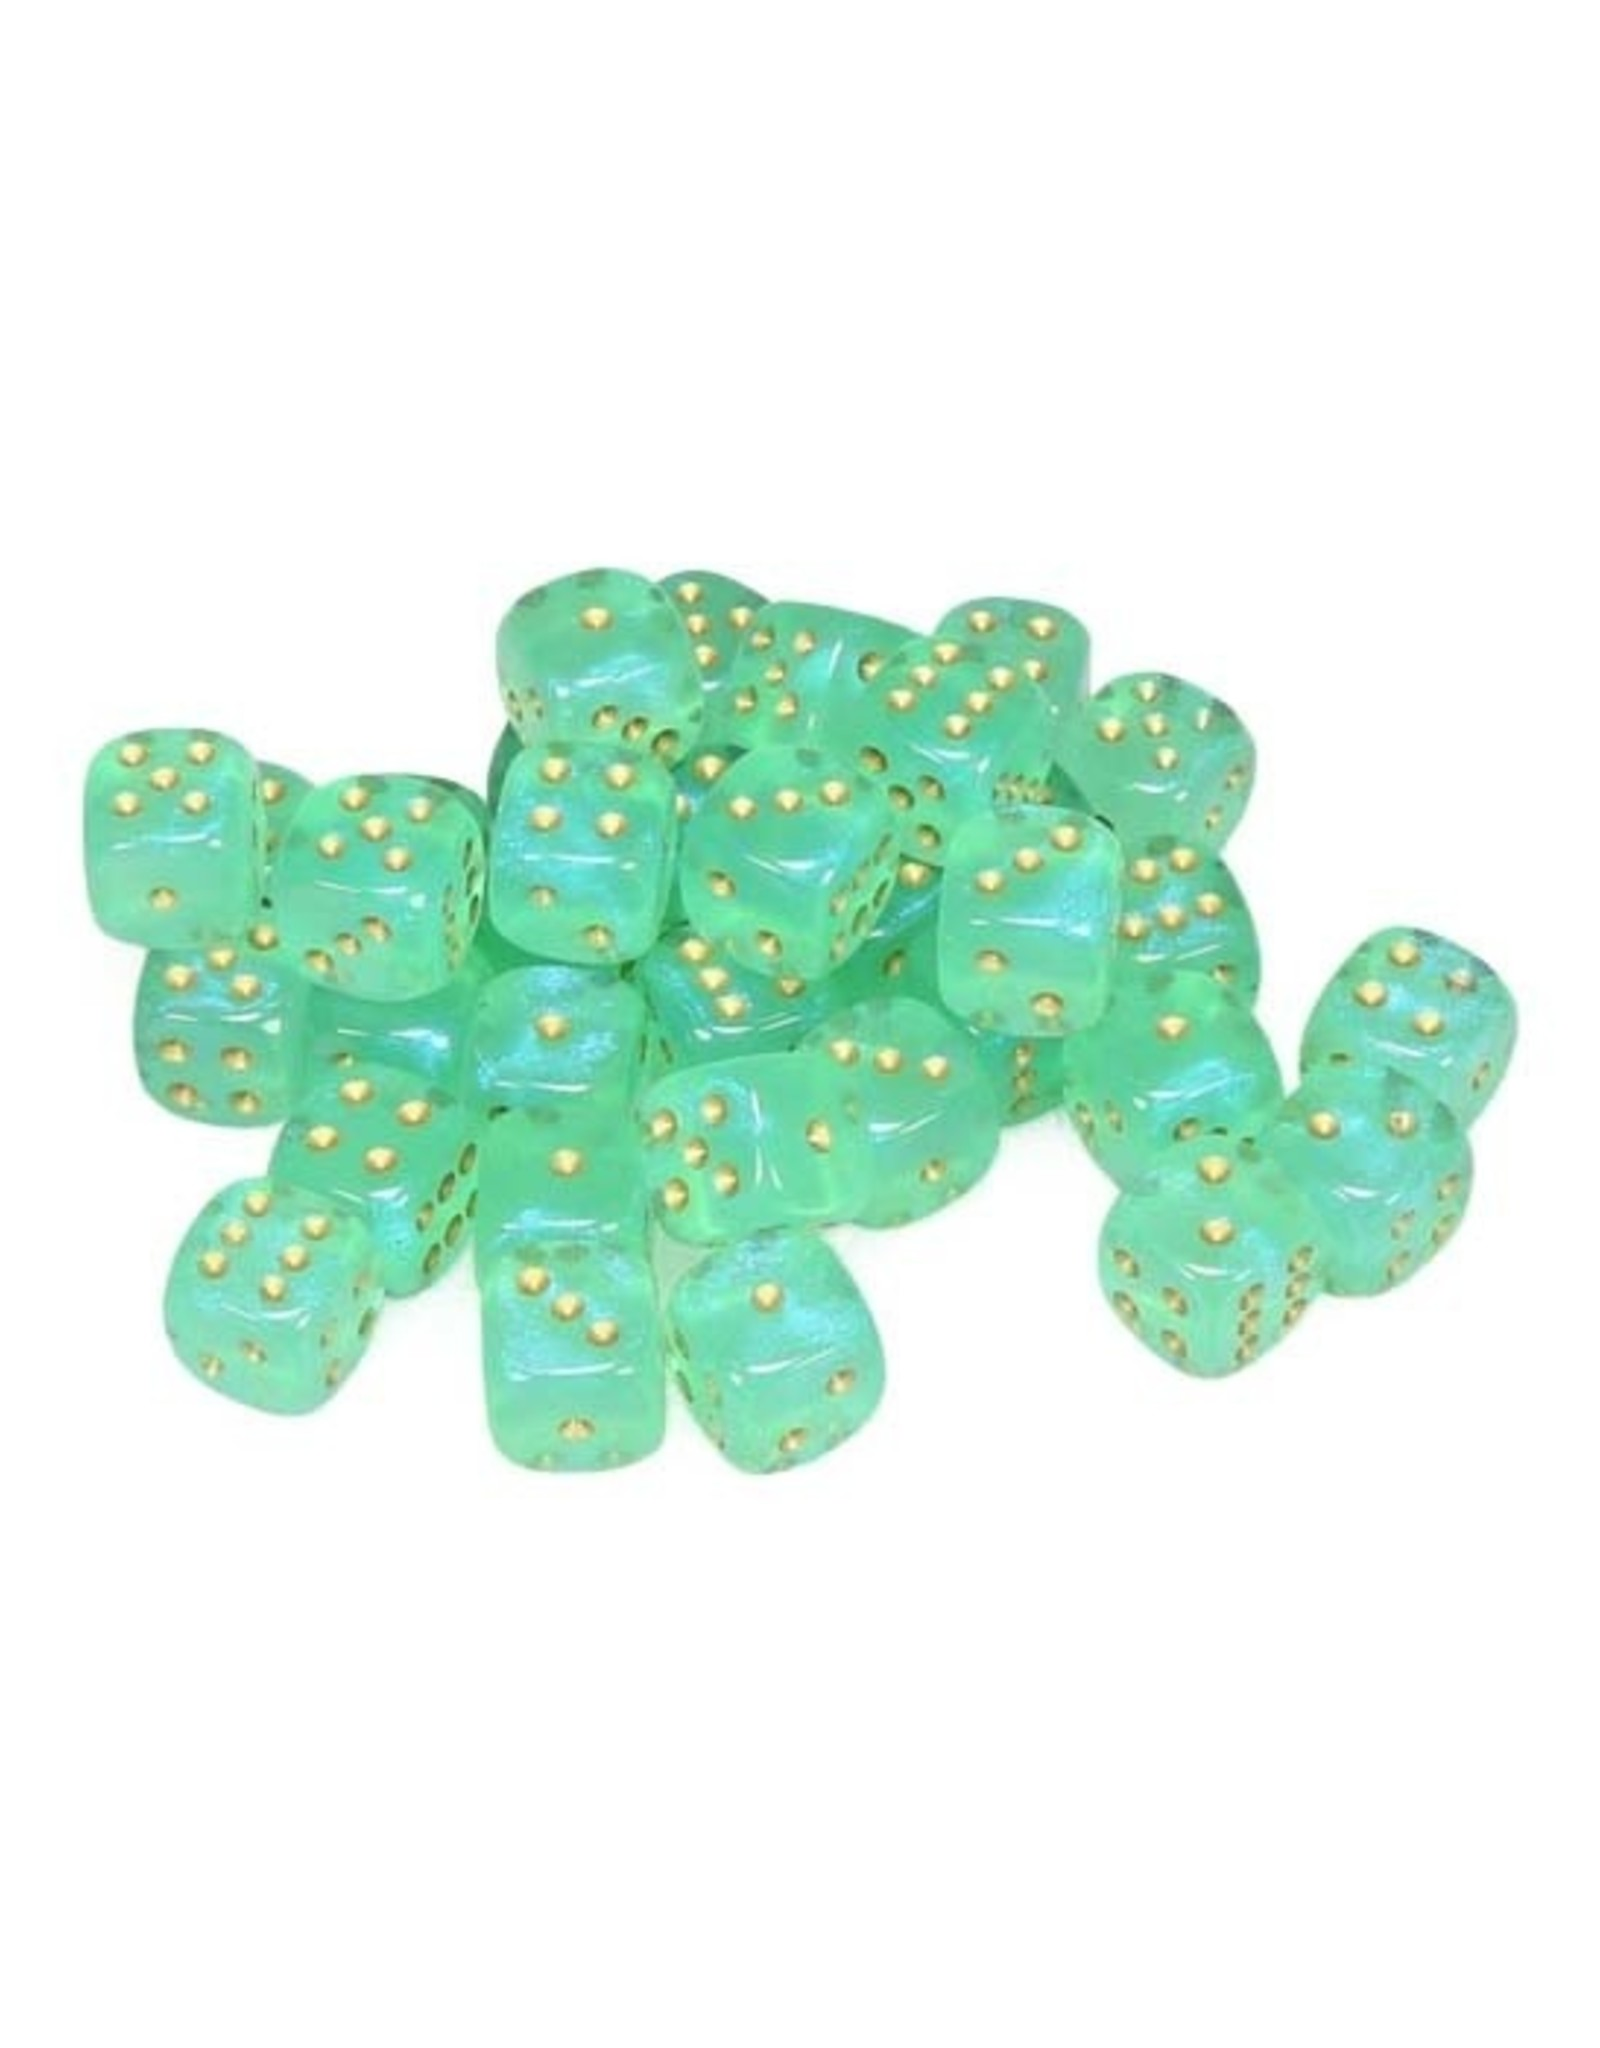 Chessex Chessex: 12mm D6 - Borealis - Light Green w/ Gold